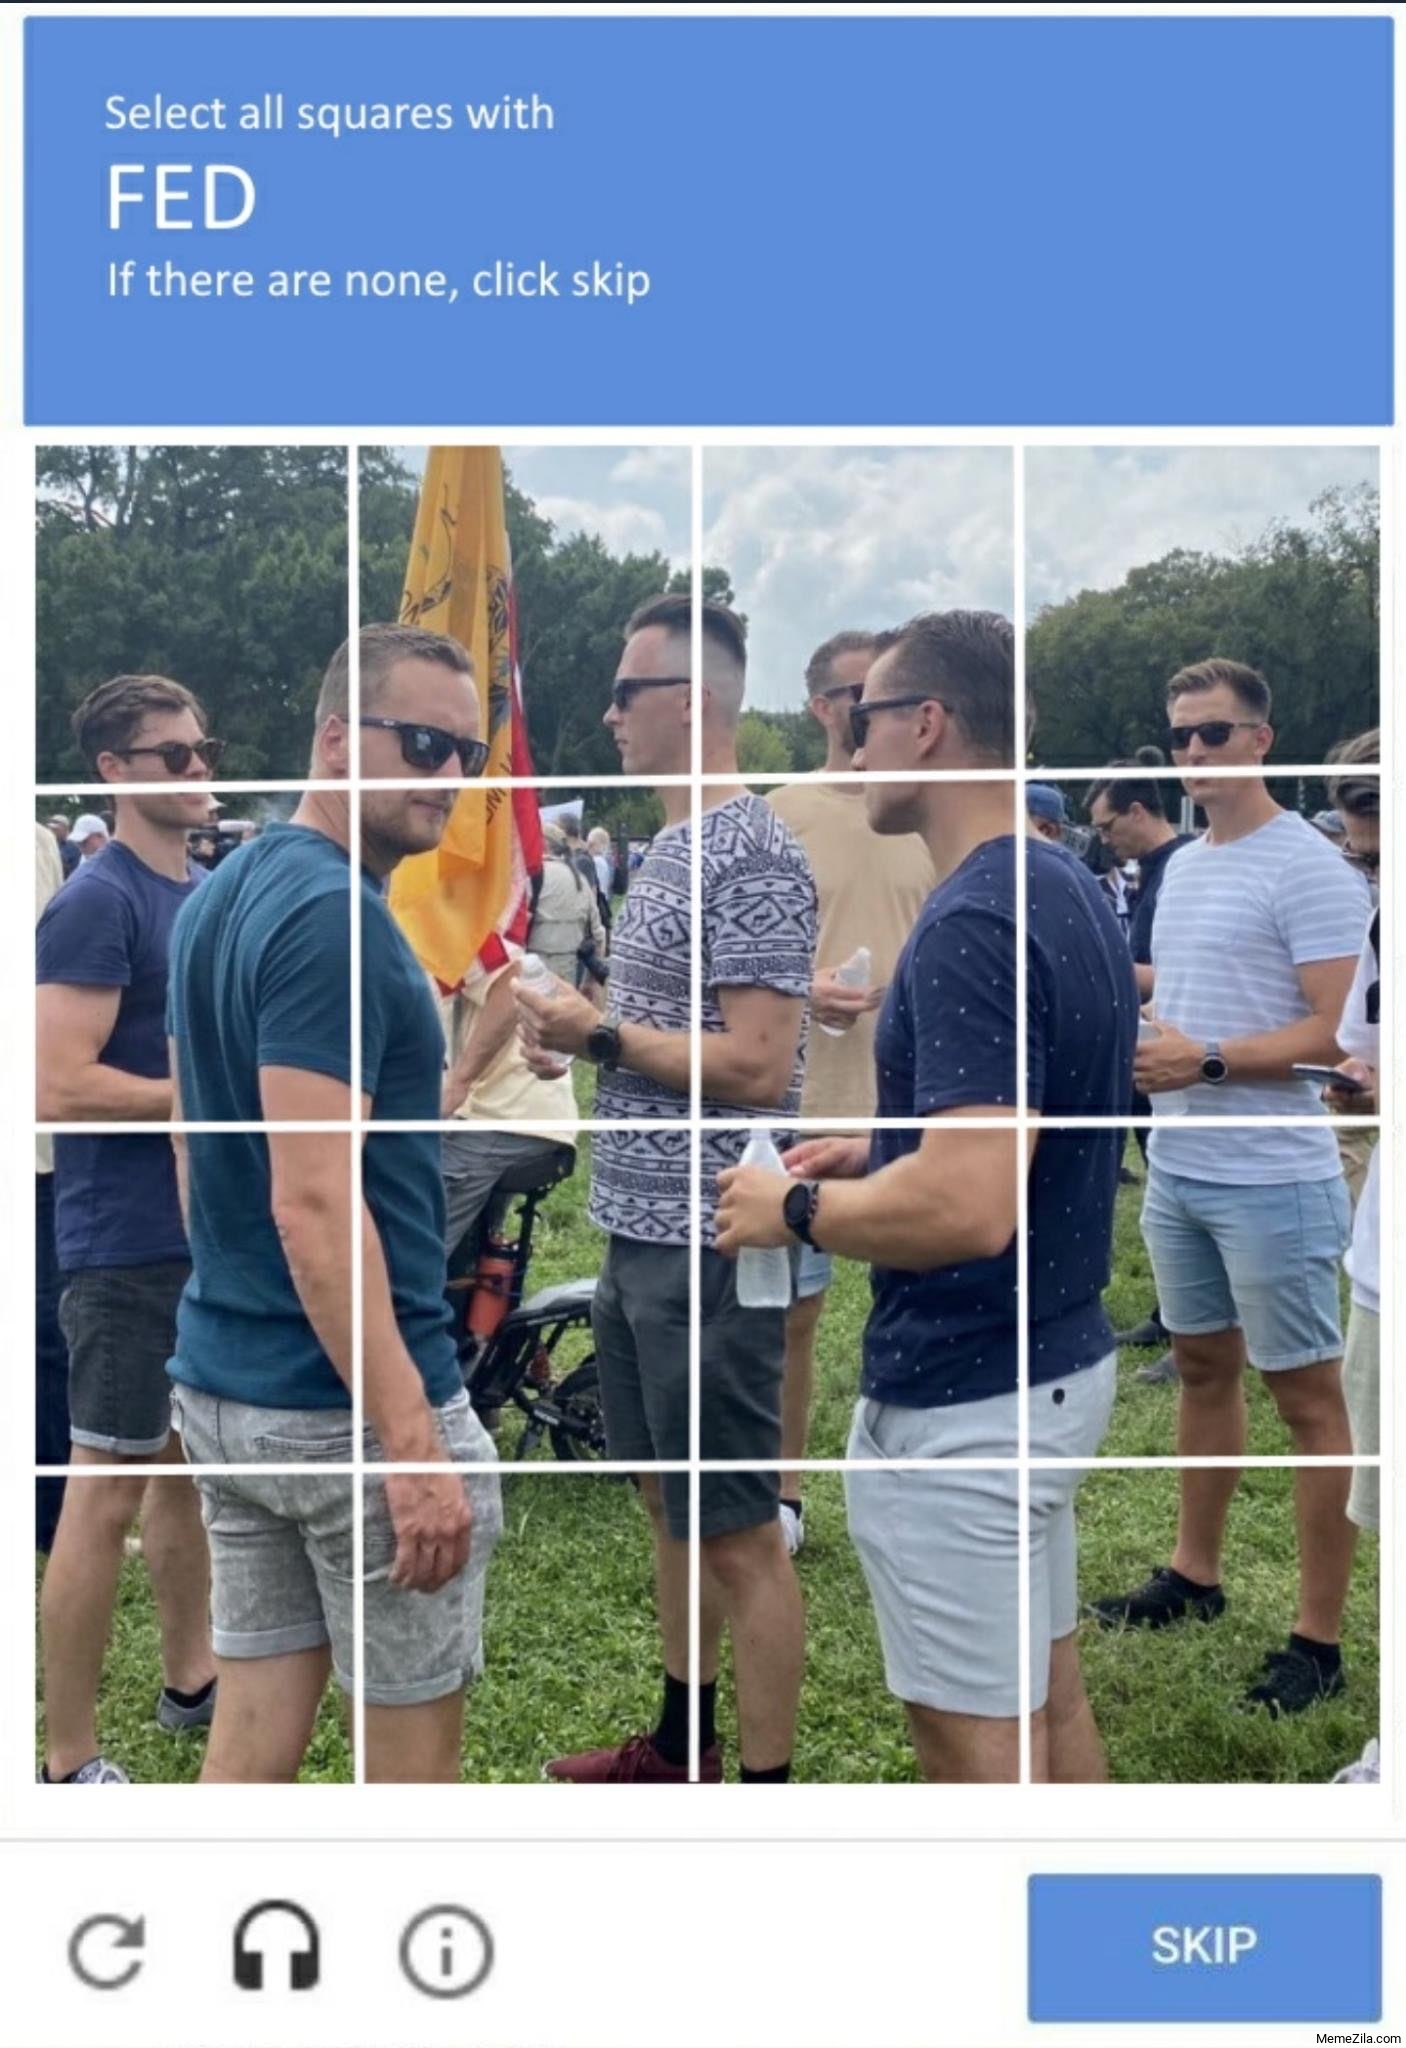 Select all squares with FED if there are none, click skip meme